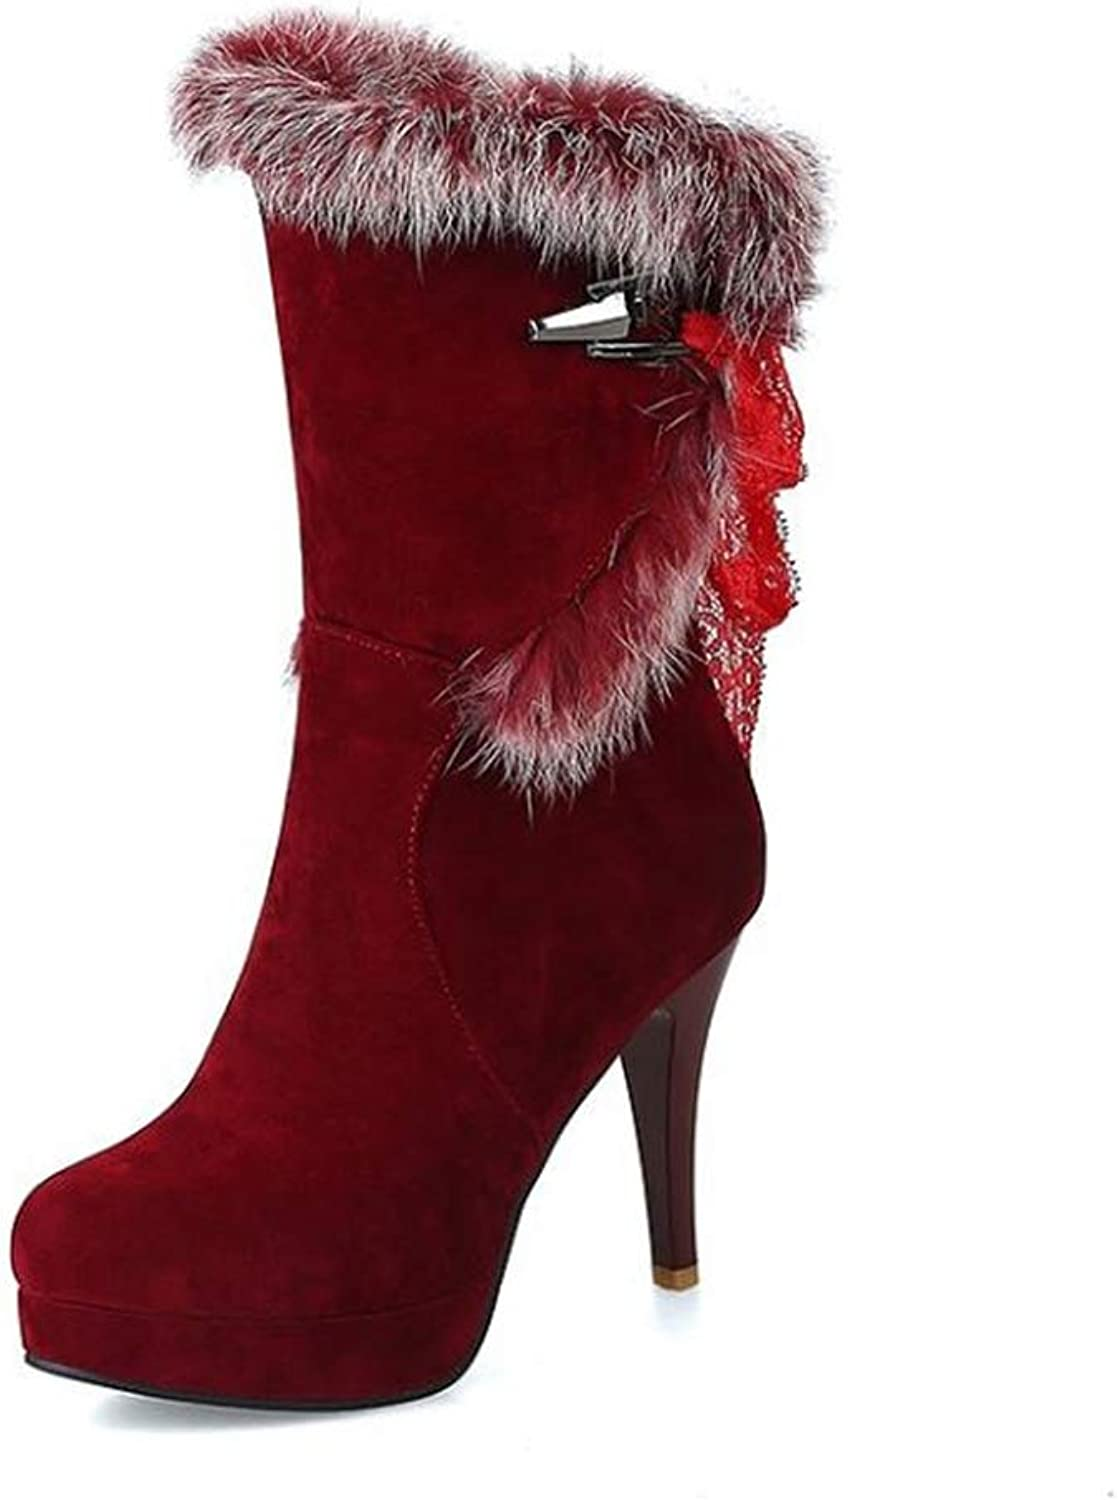 Women's Elegant Suede Stiletto Waterproof Round Toe High Heel Warm Ankle Winter Boots